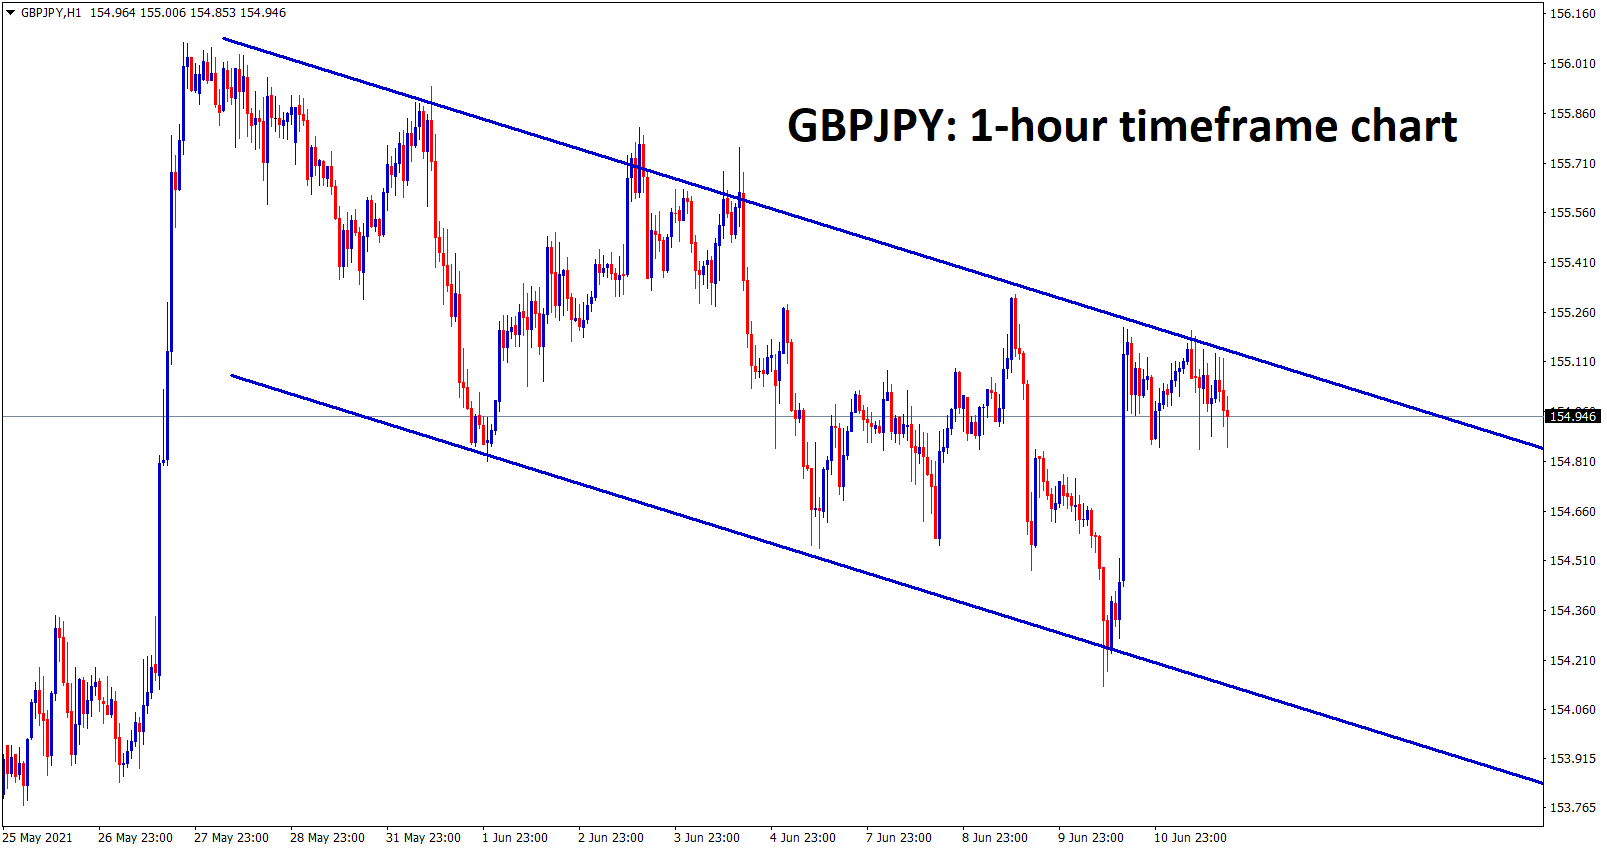 GBPJPY is moving in a descending channel and its consolidating now at the lower high zone